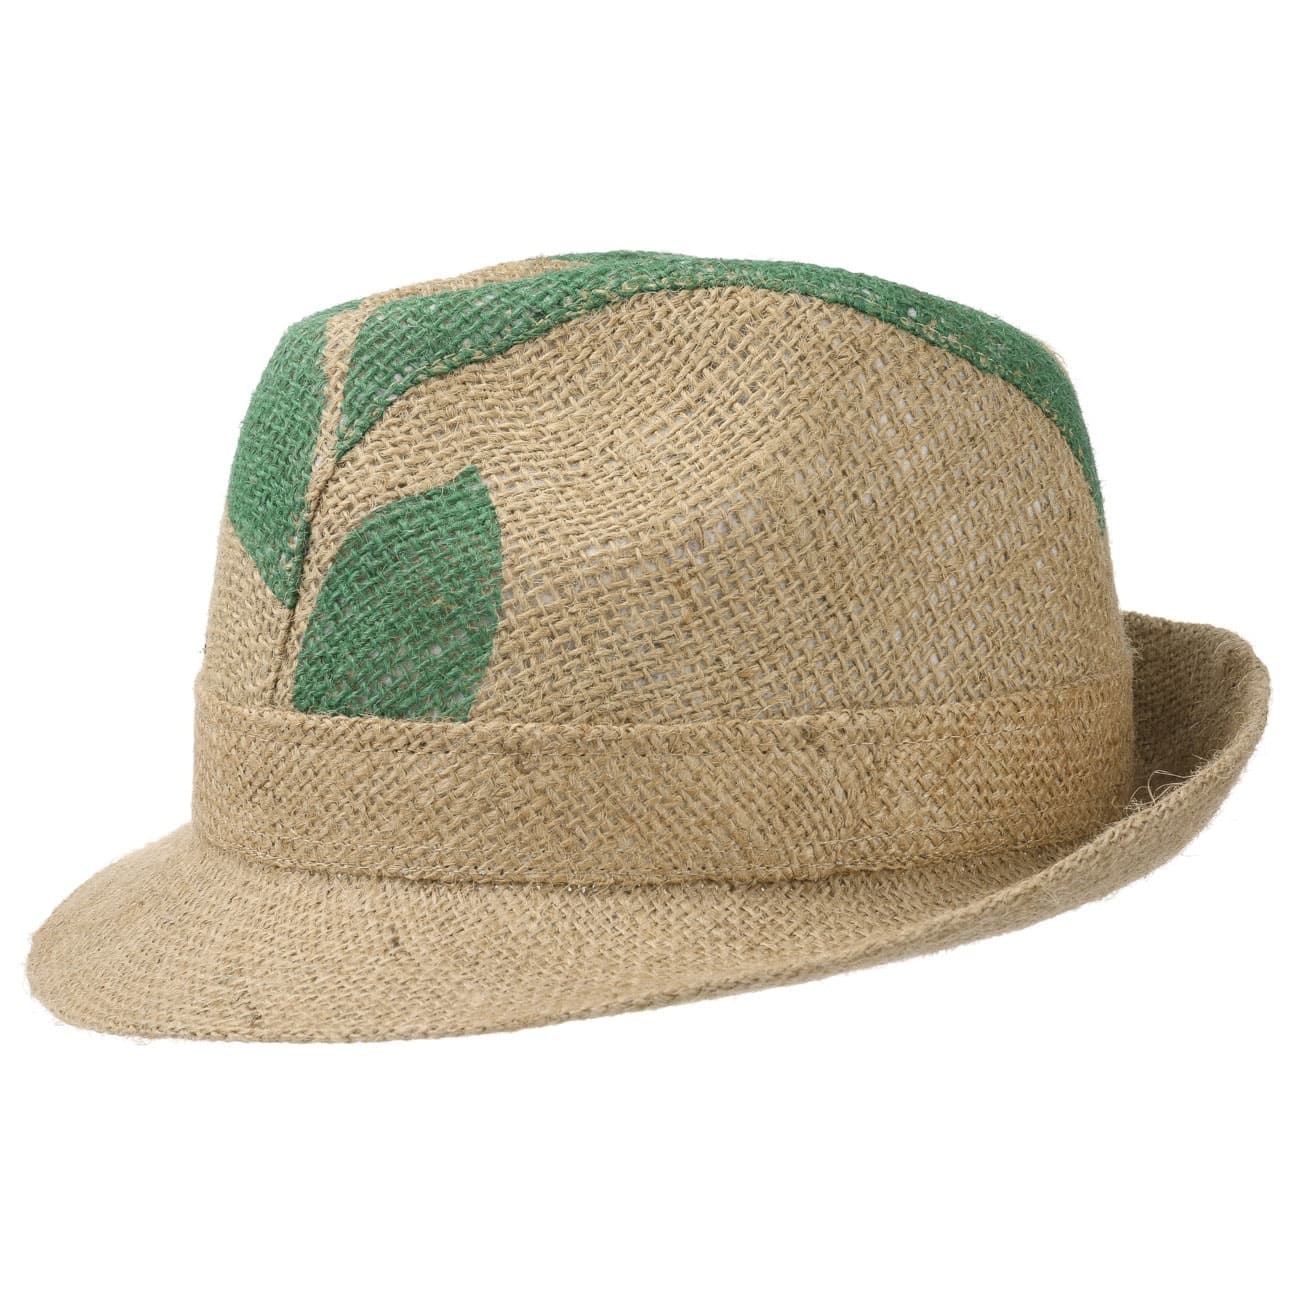 Sombrero Cafe Corretto Trilby by ReHats